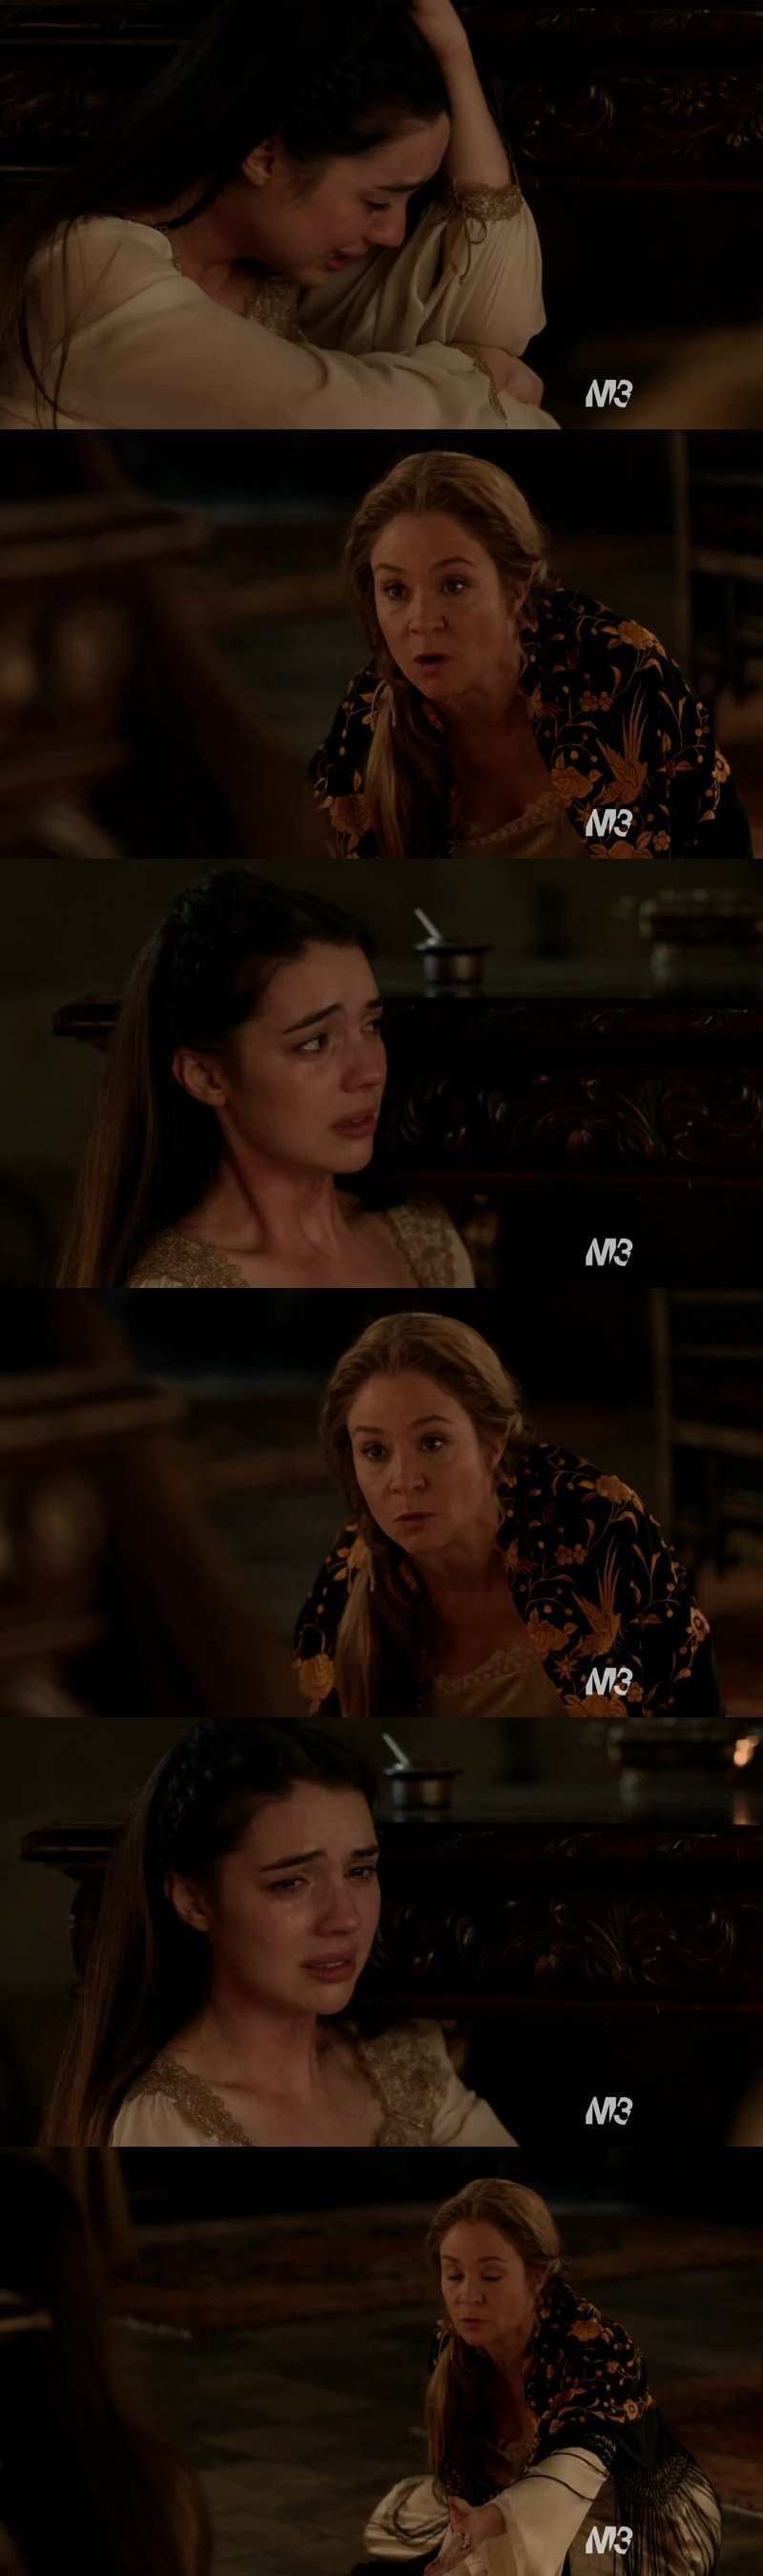 THIS SCENE WAS SO INTENSE AND MARY WAS SO STRONG, OMG. I'm sure that this fact will condition Mary's life and she won't be the same. Catherine was so strong too and I loved her speech in this scene! This is one of the most beautiful episodes of Reign!